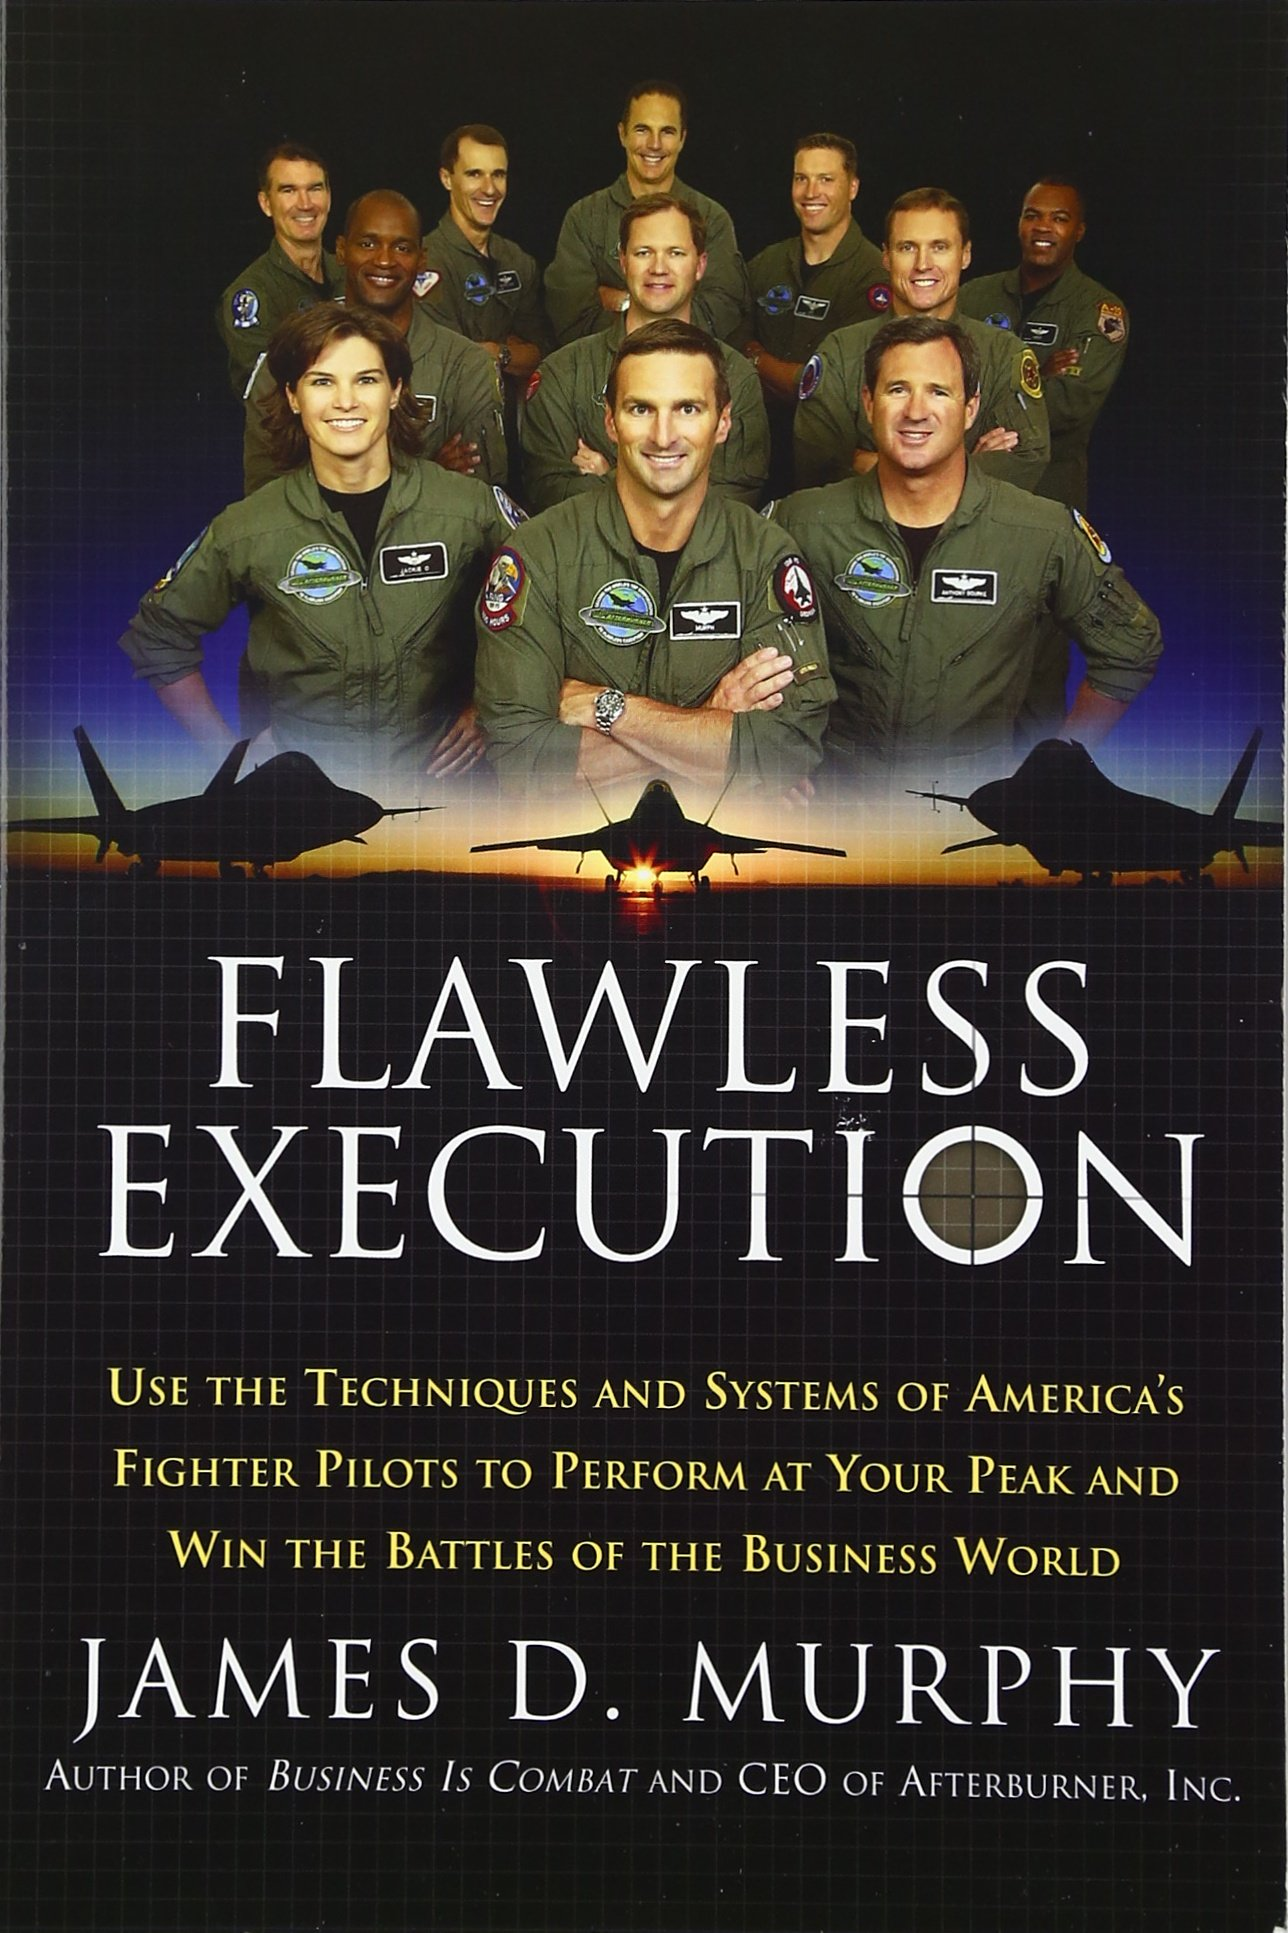 Flawless Execution Techniques Americas Business product image